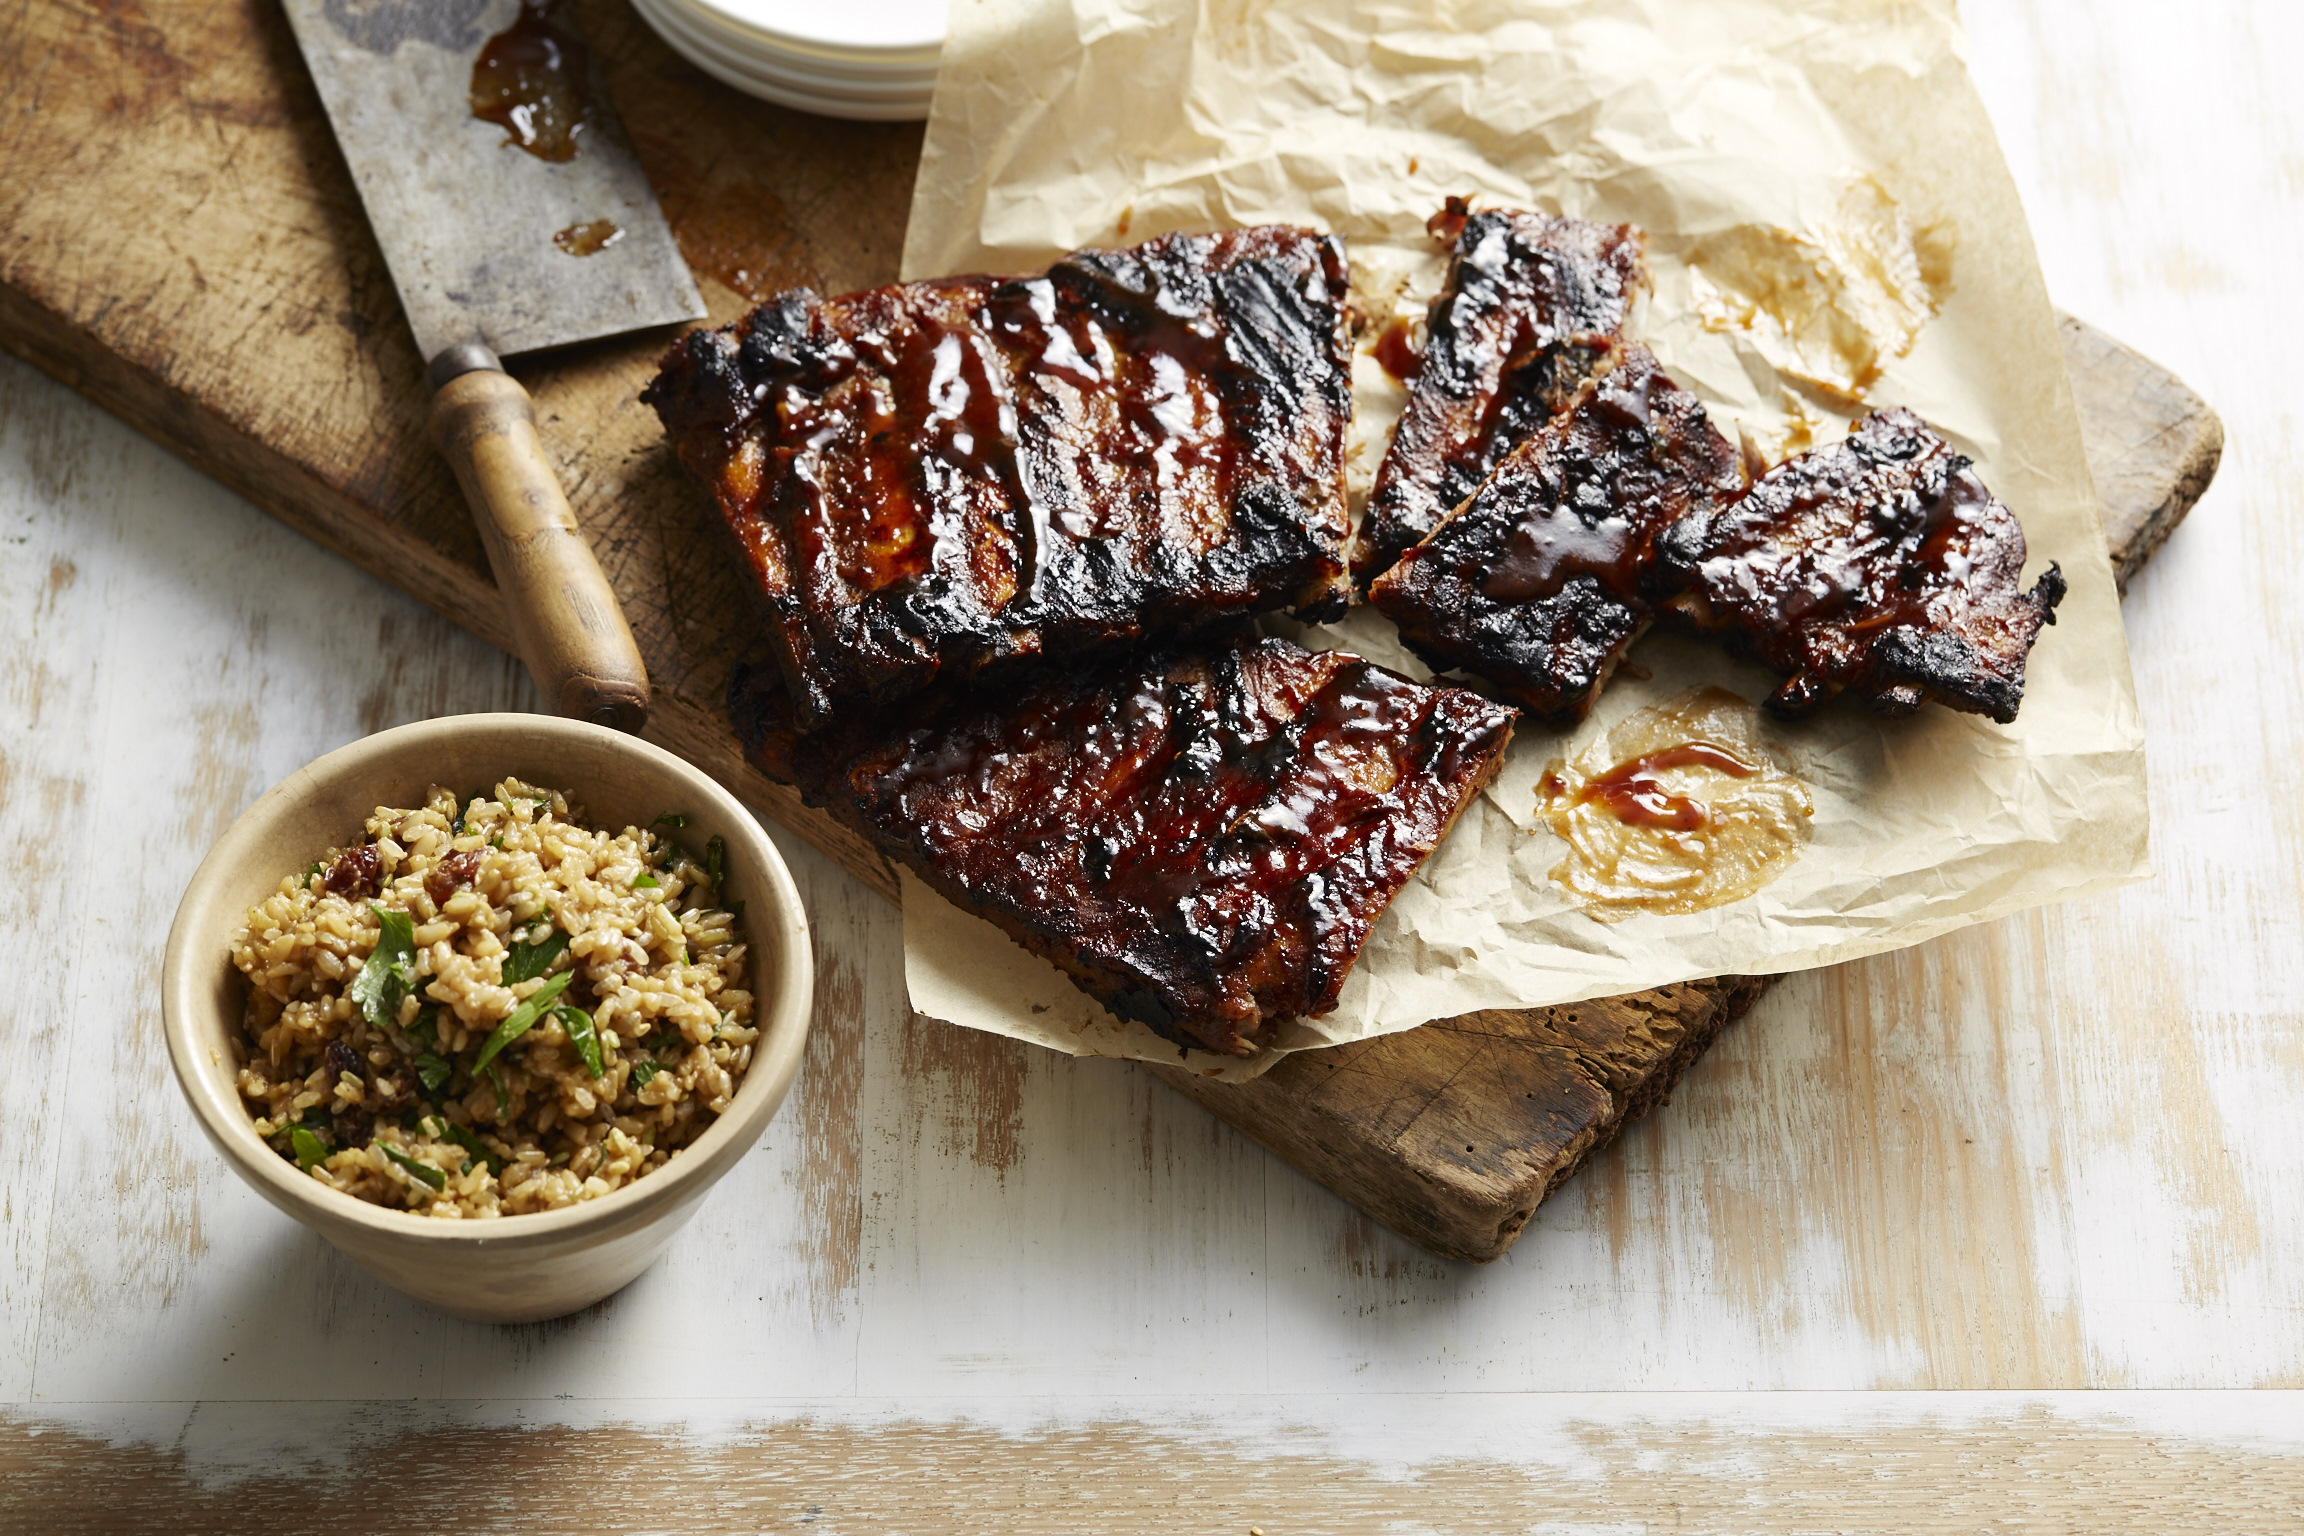 Sticky pork ribs with brown rice pilaf